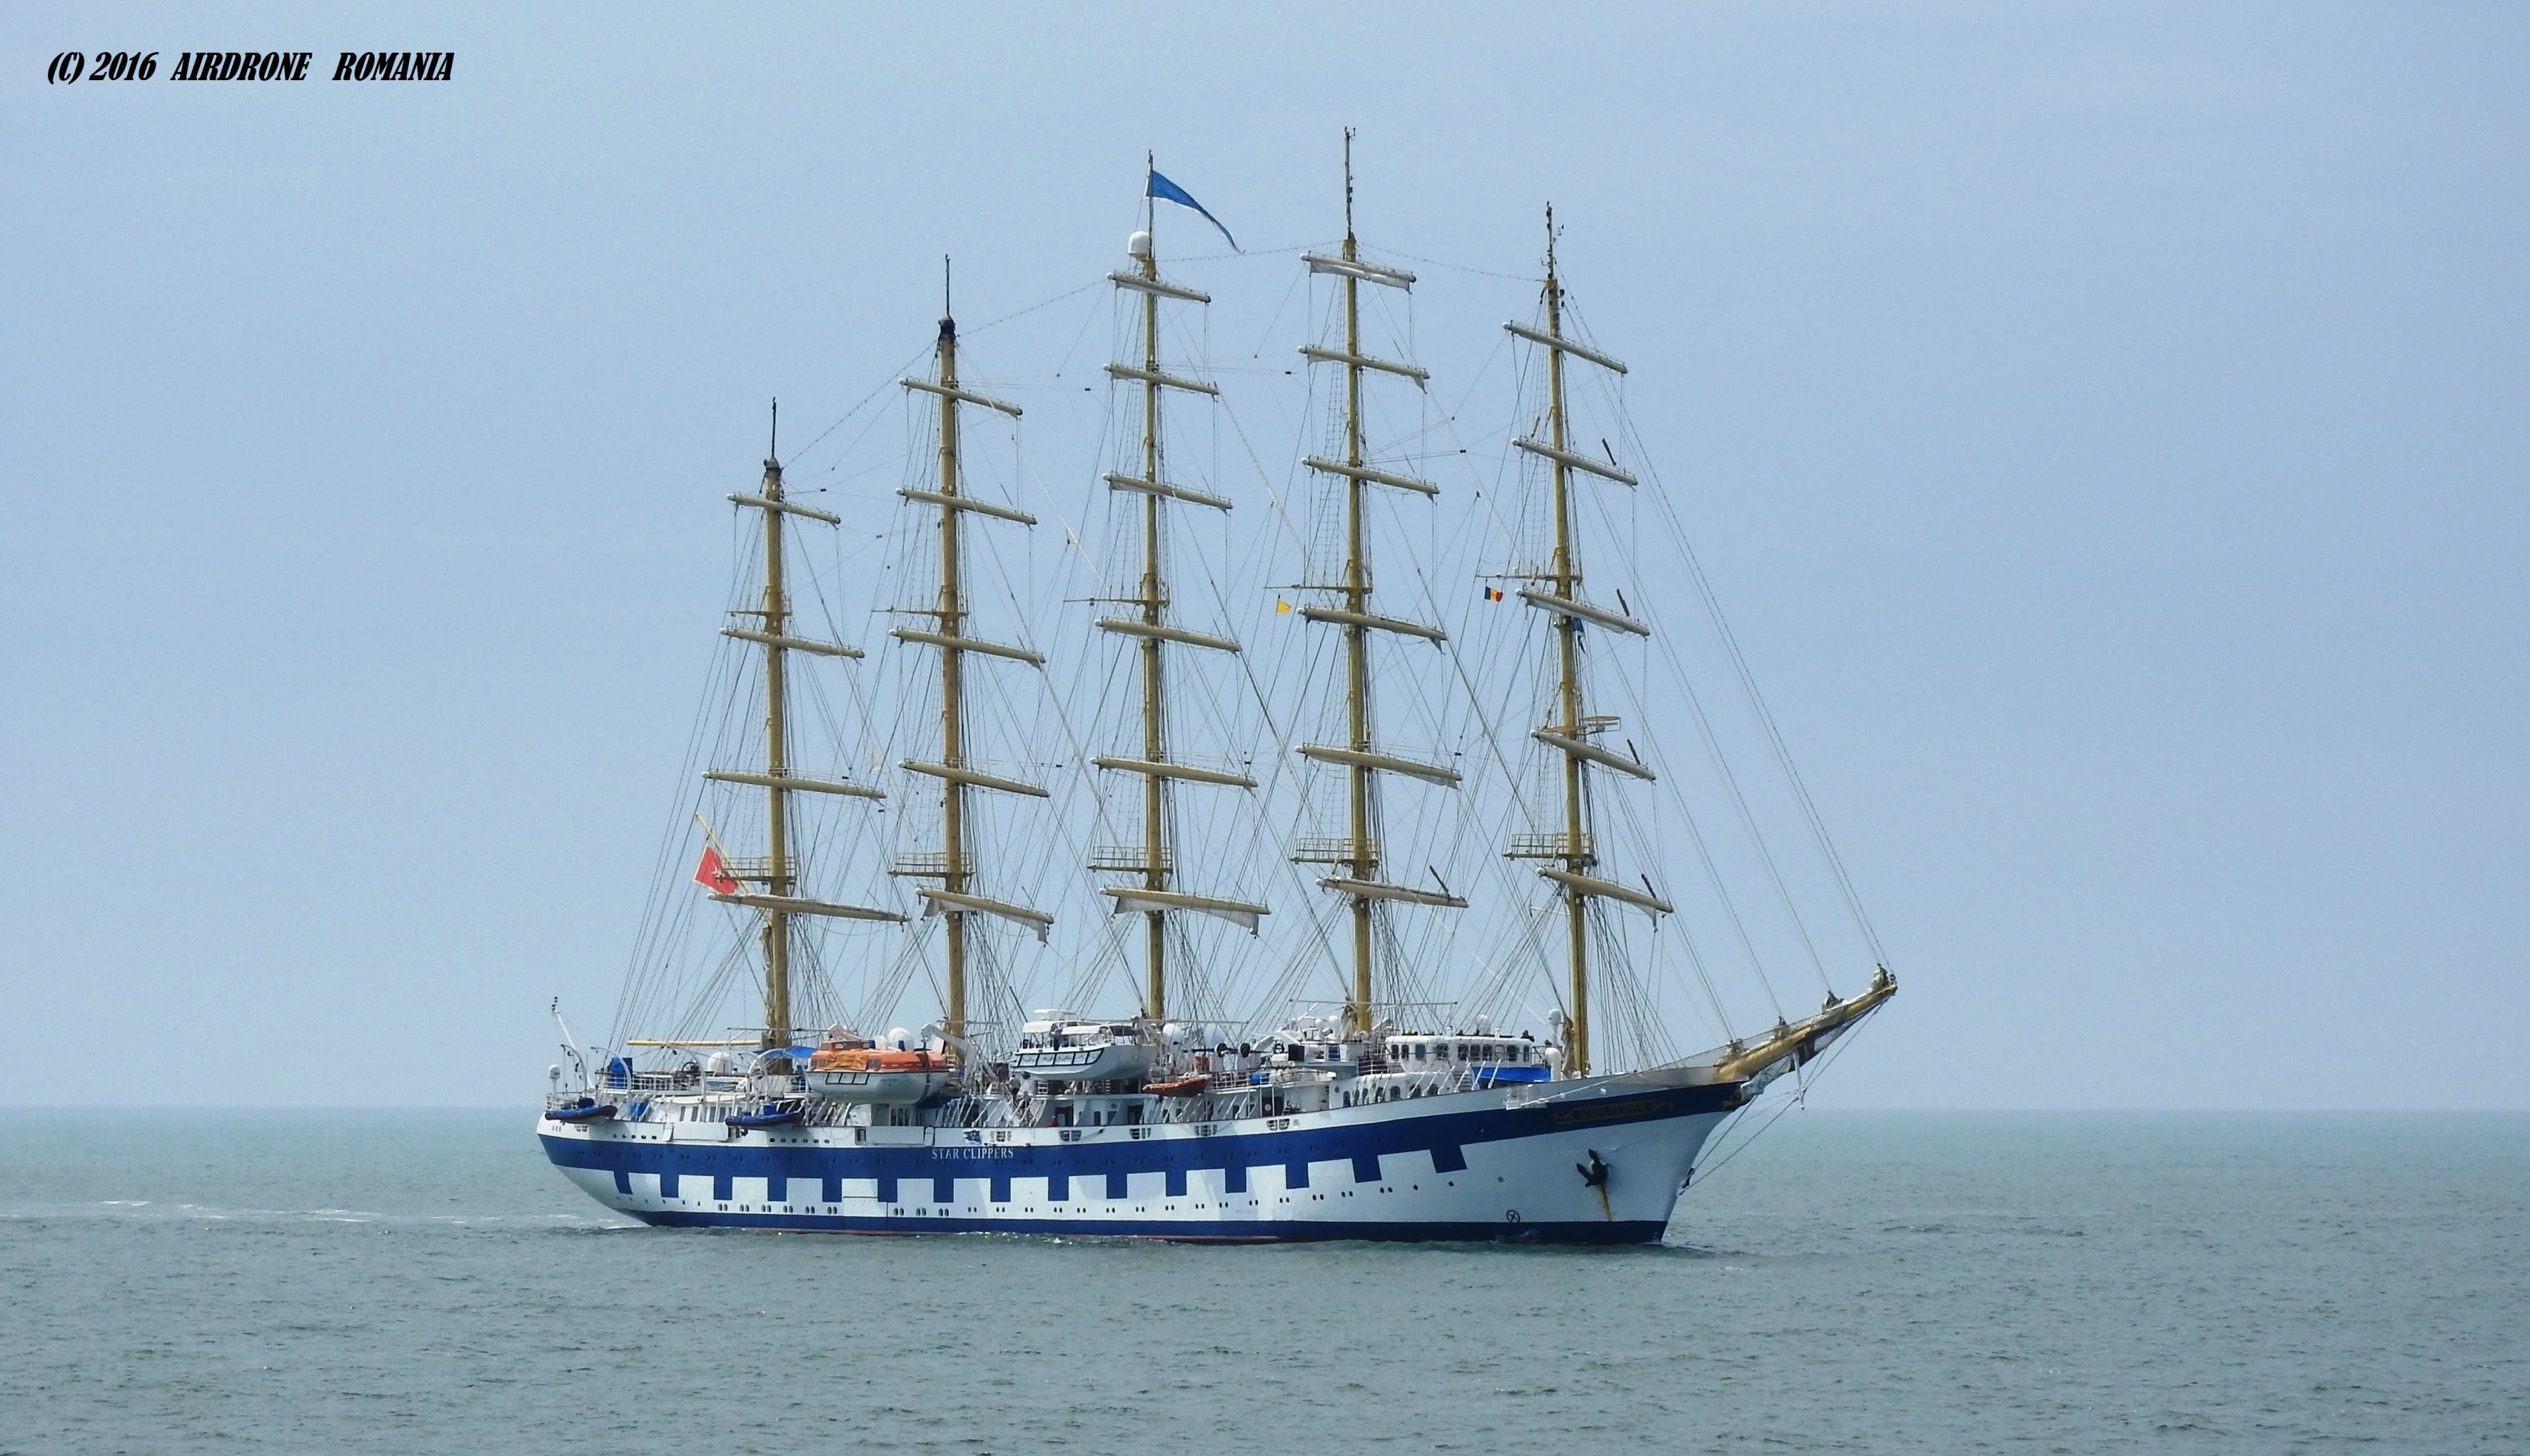 Sailing ship photo